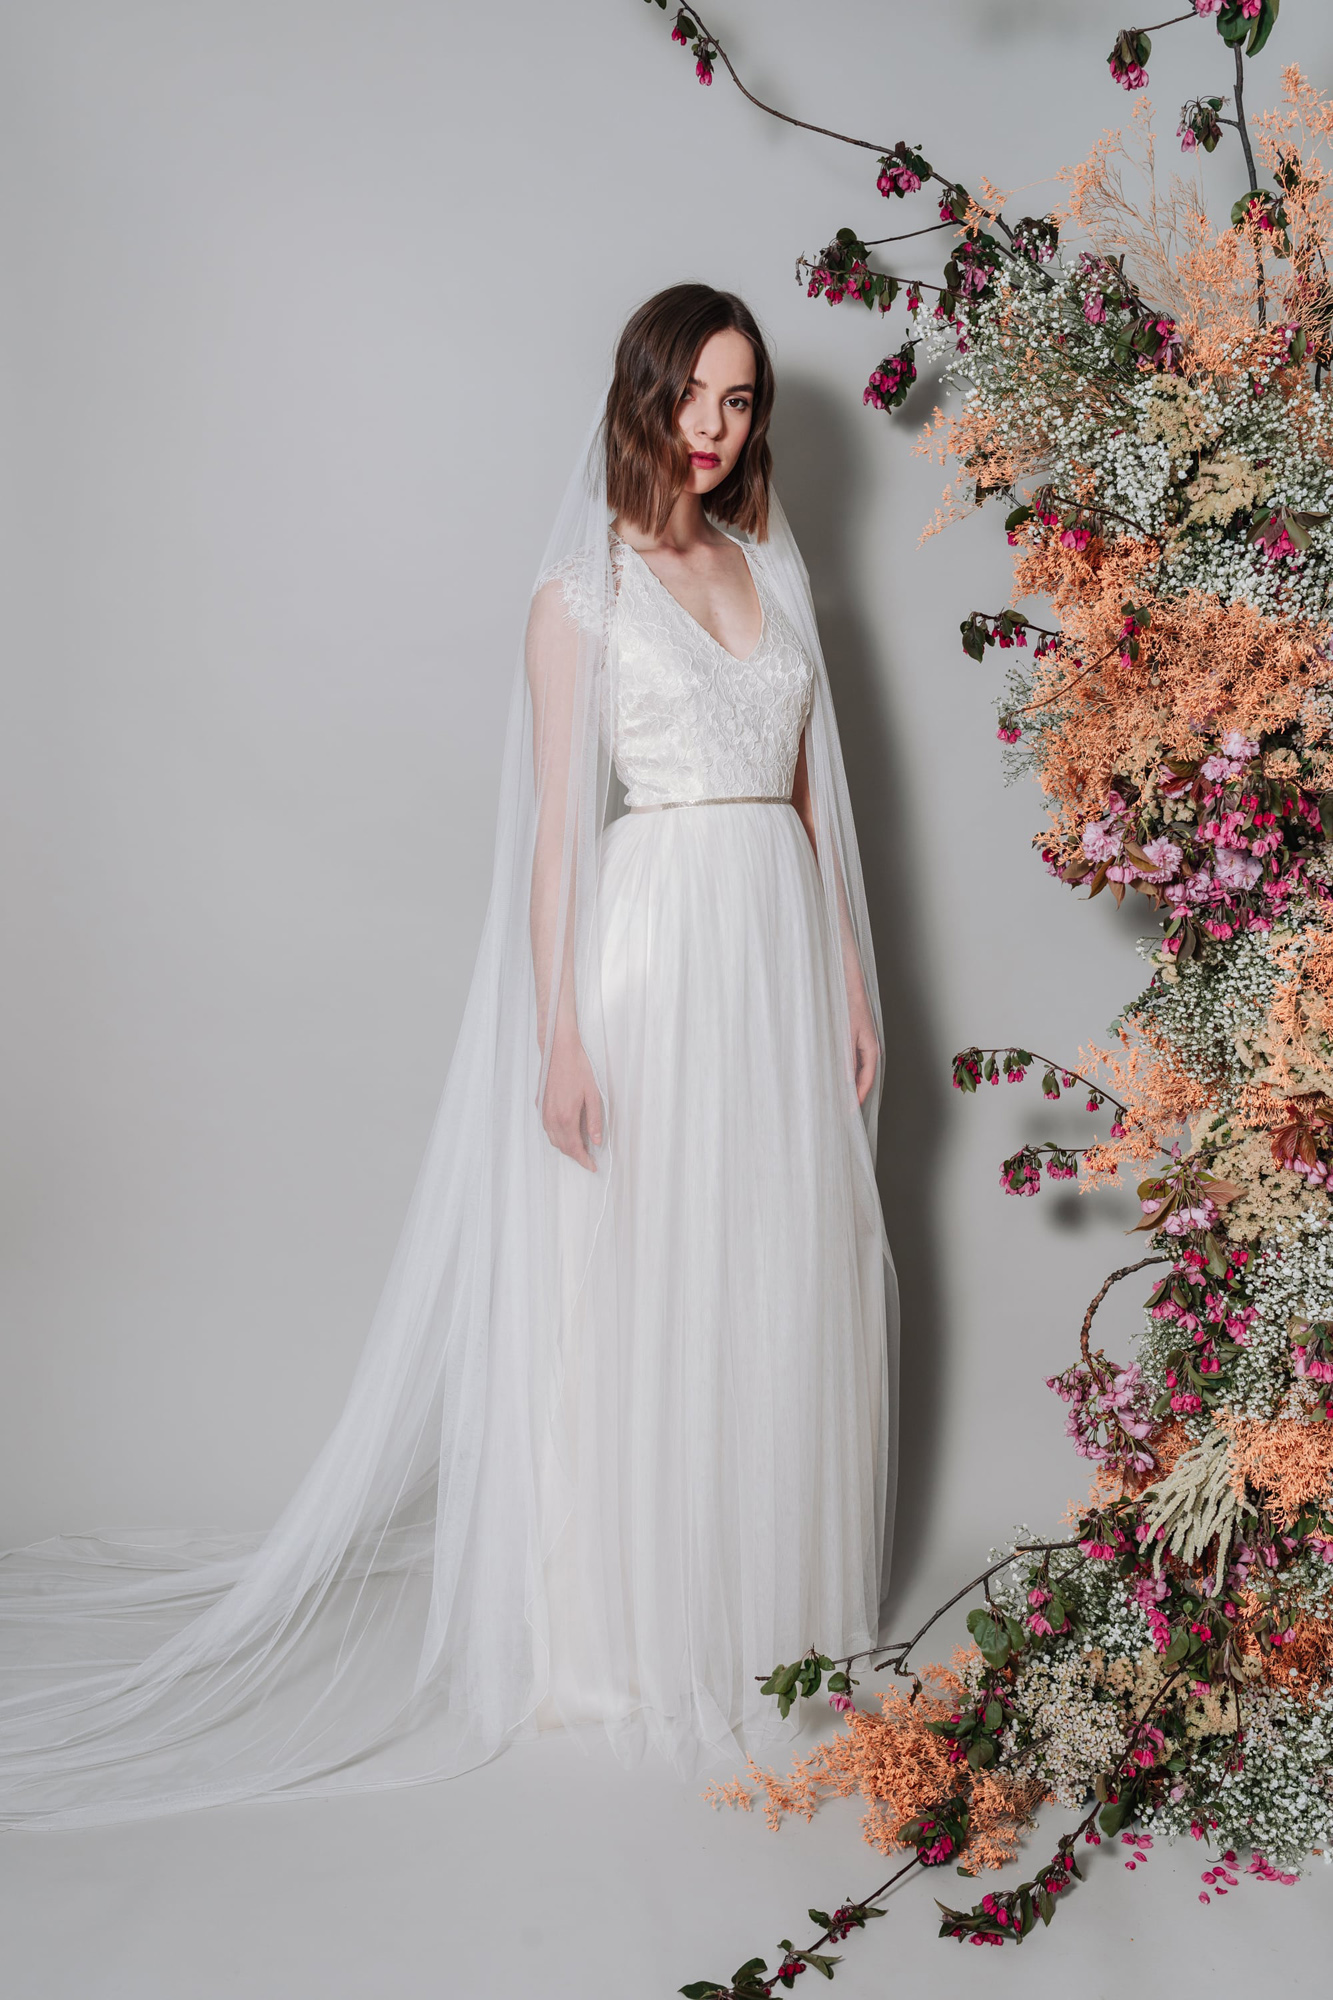 Kate-Beaumont-Sheffield-Mimosa-Lace-Tulle-Bohemian-Wedding-Gown-18.jpg